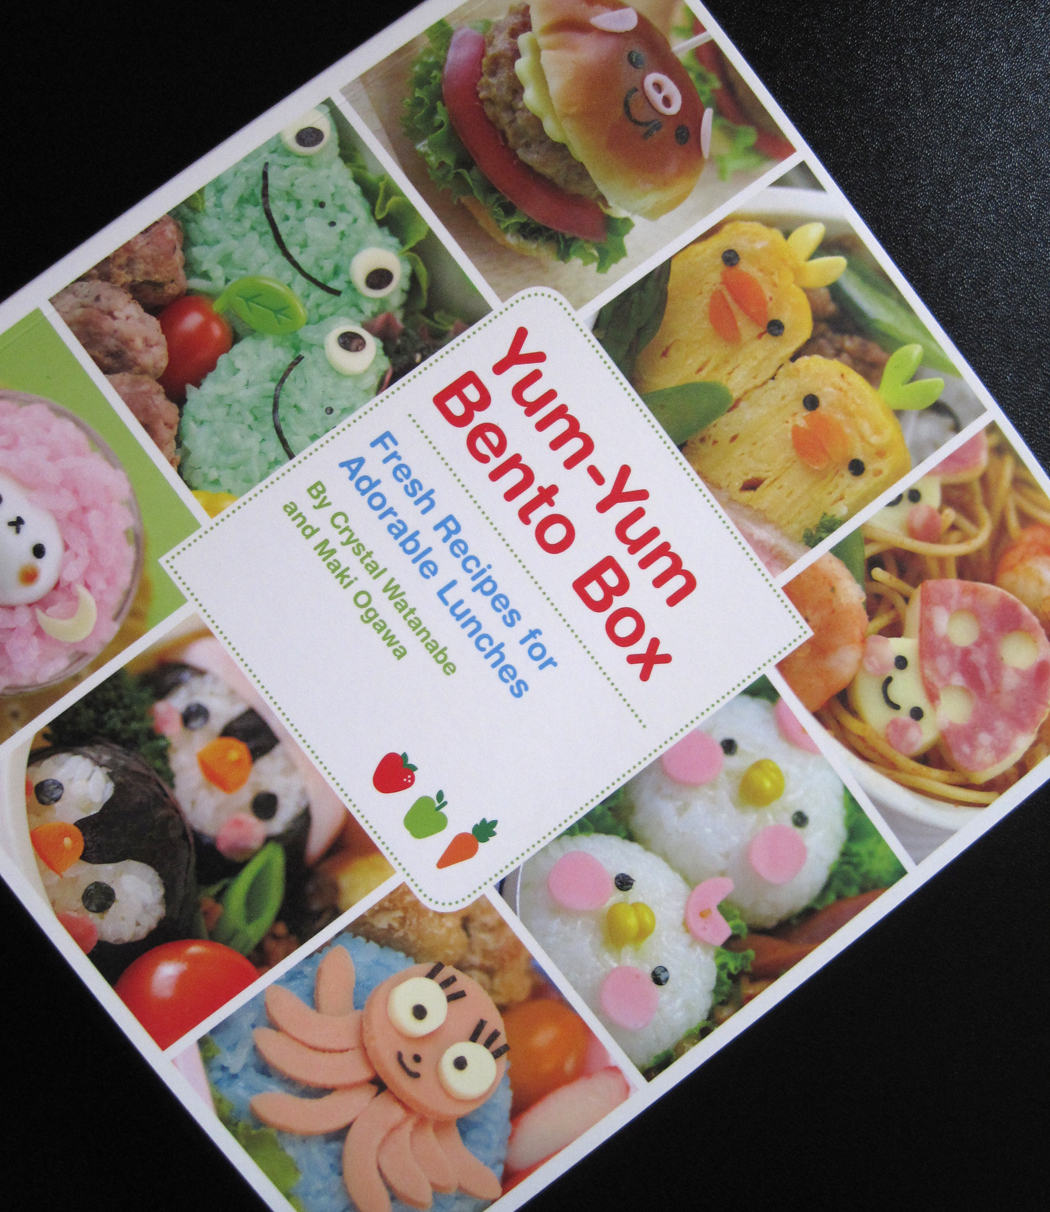 Yum Yum Bento Box Book Cover